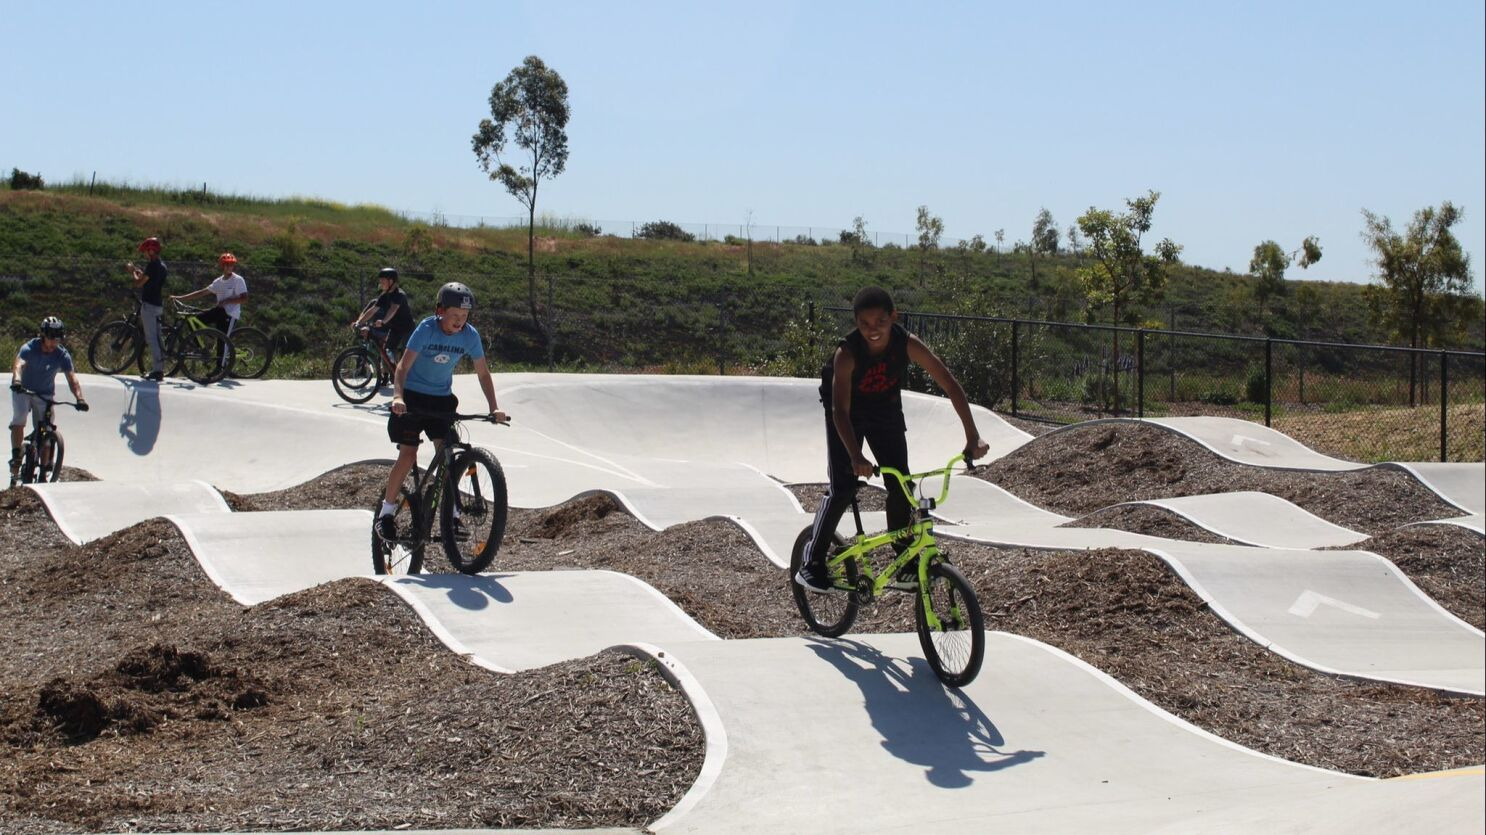 PHR pumped for new community park - Del Mar Times